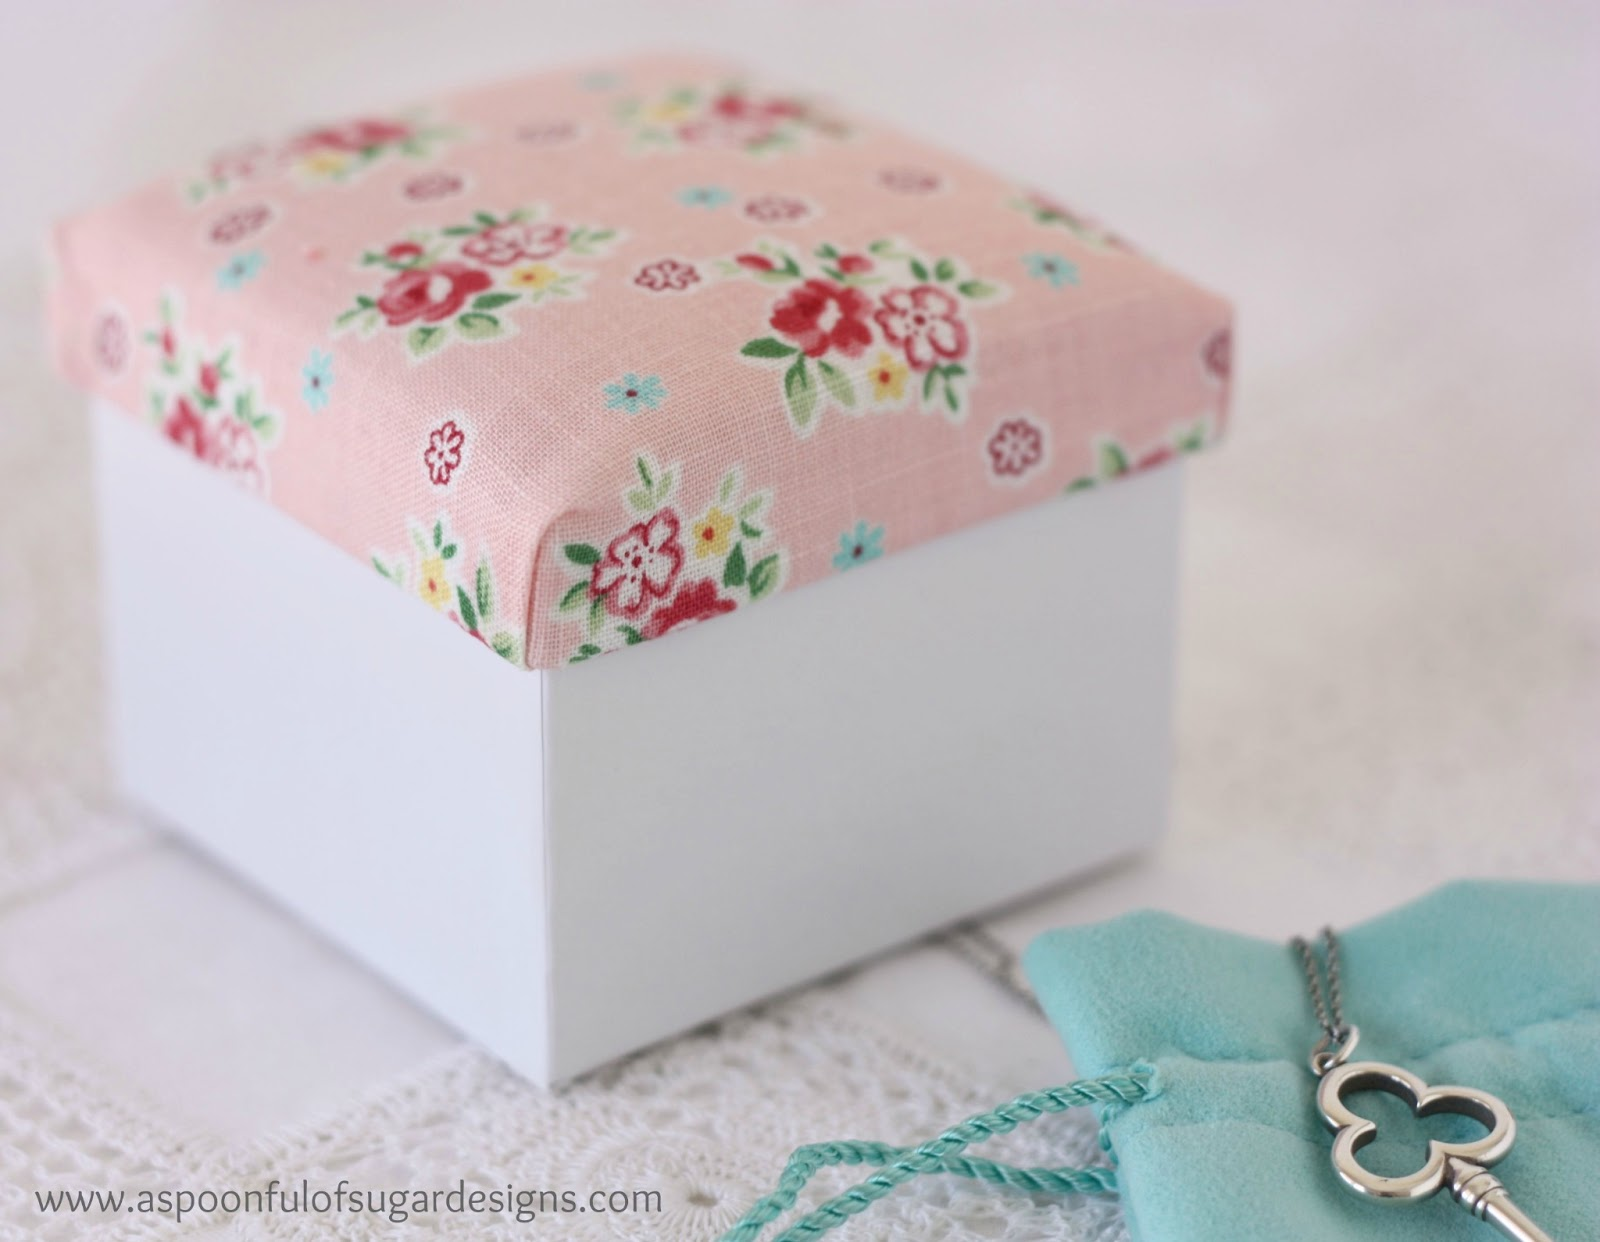 Customise Your Craft Box